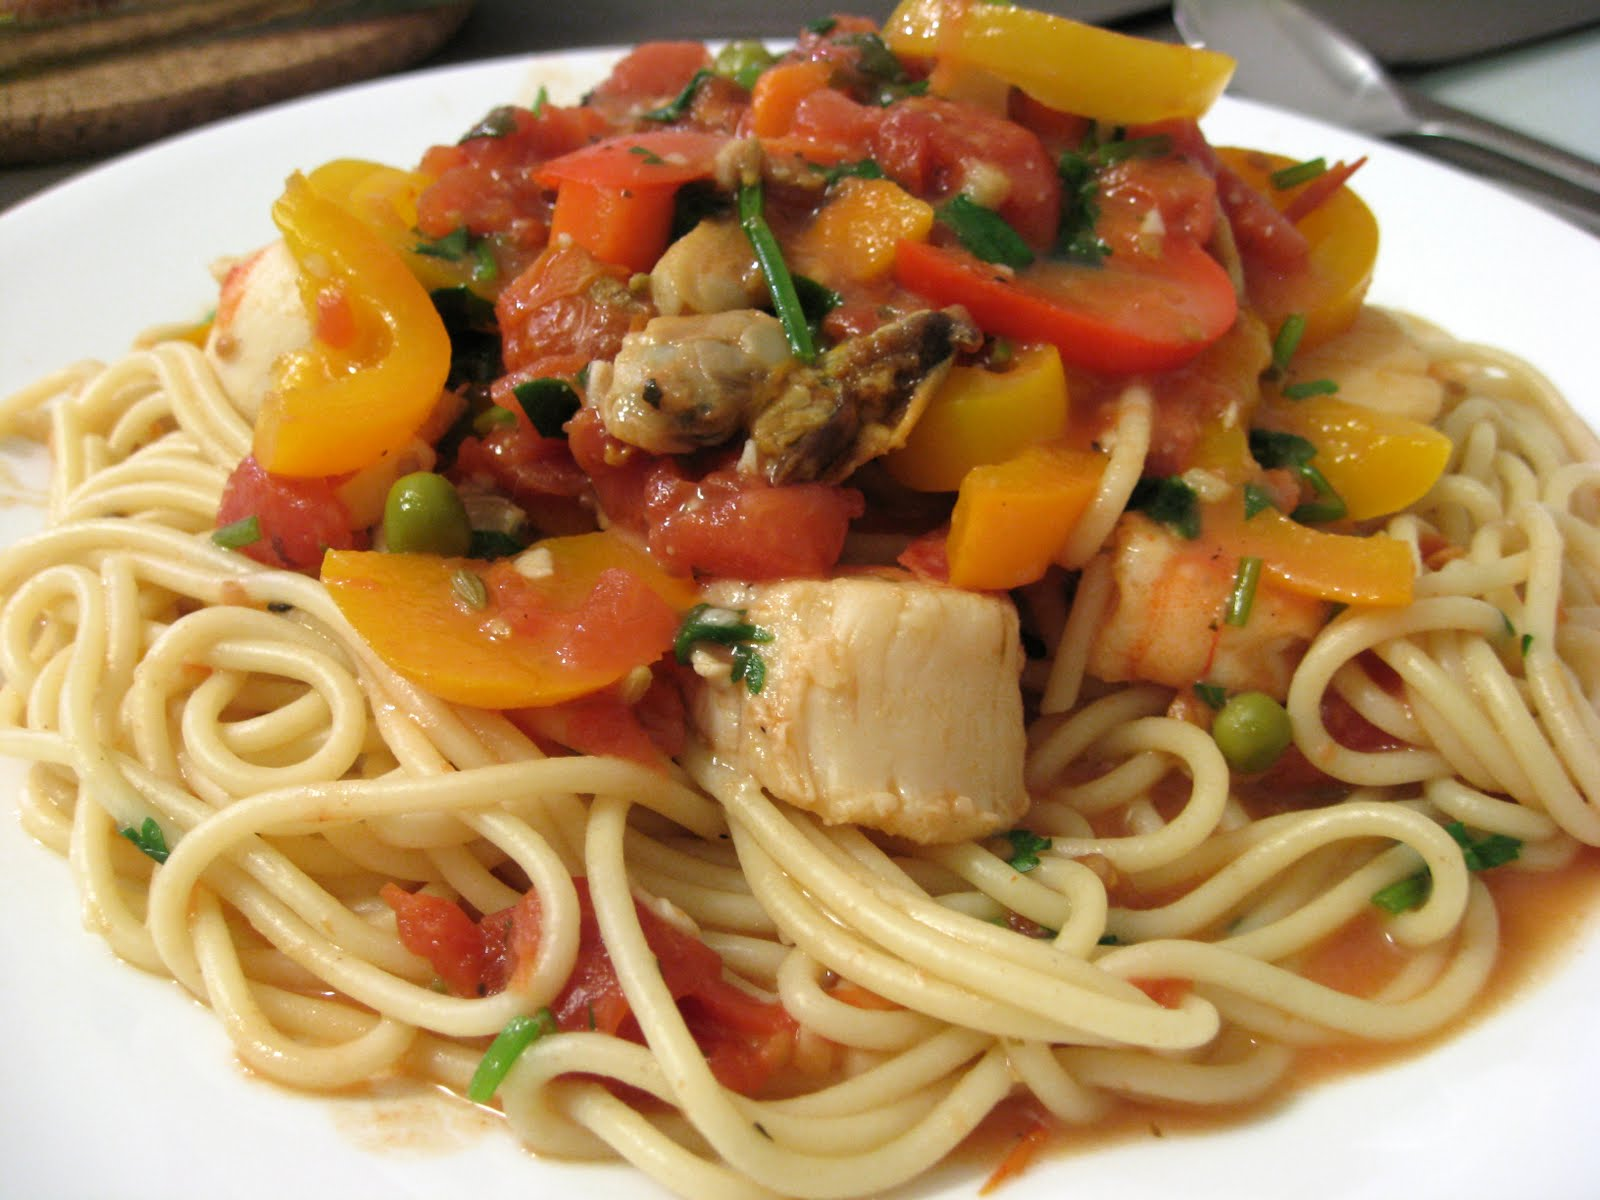 Nunu will blog for chicken wings.: Nunu's Kitchen - Seafood pasta